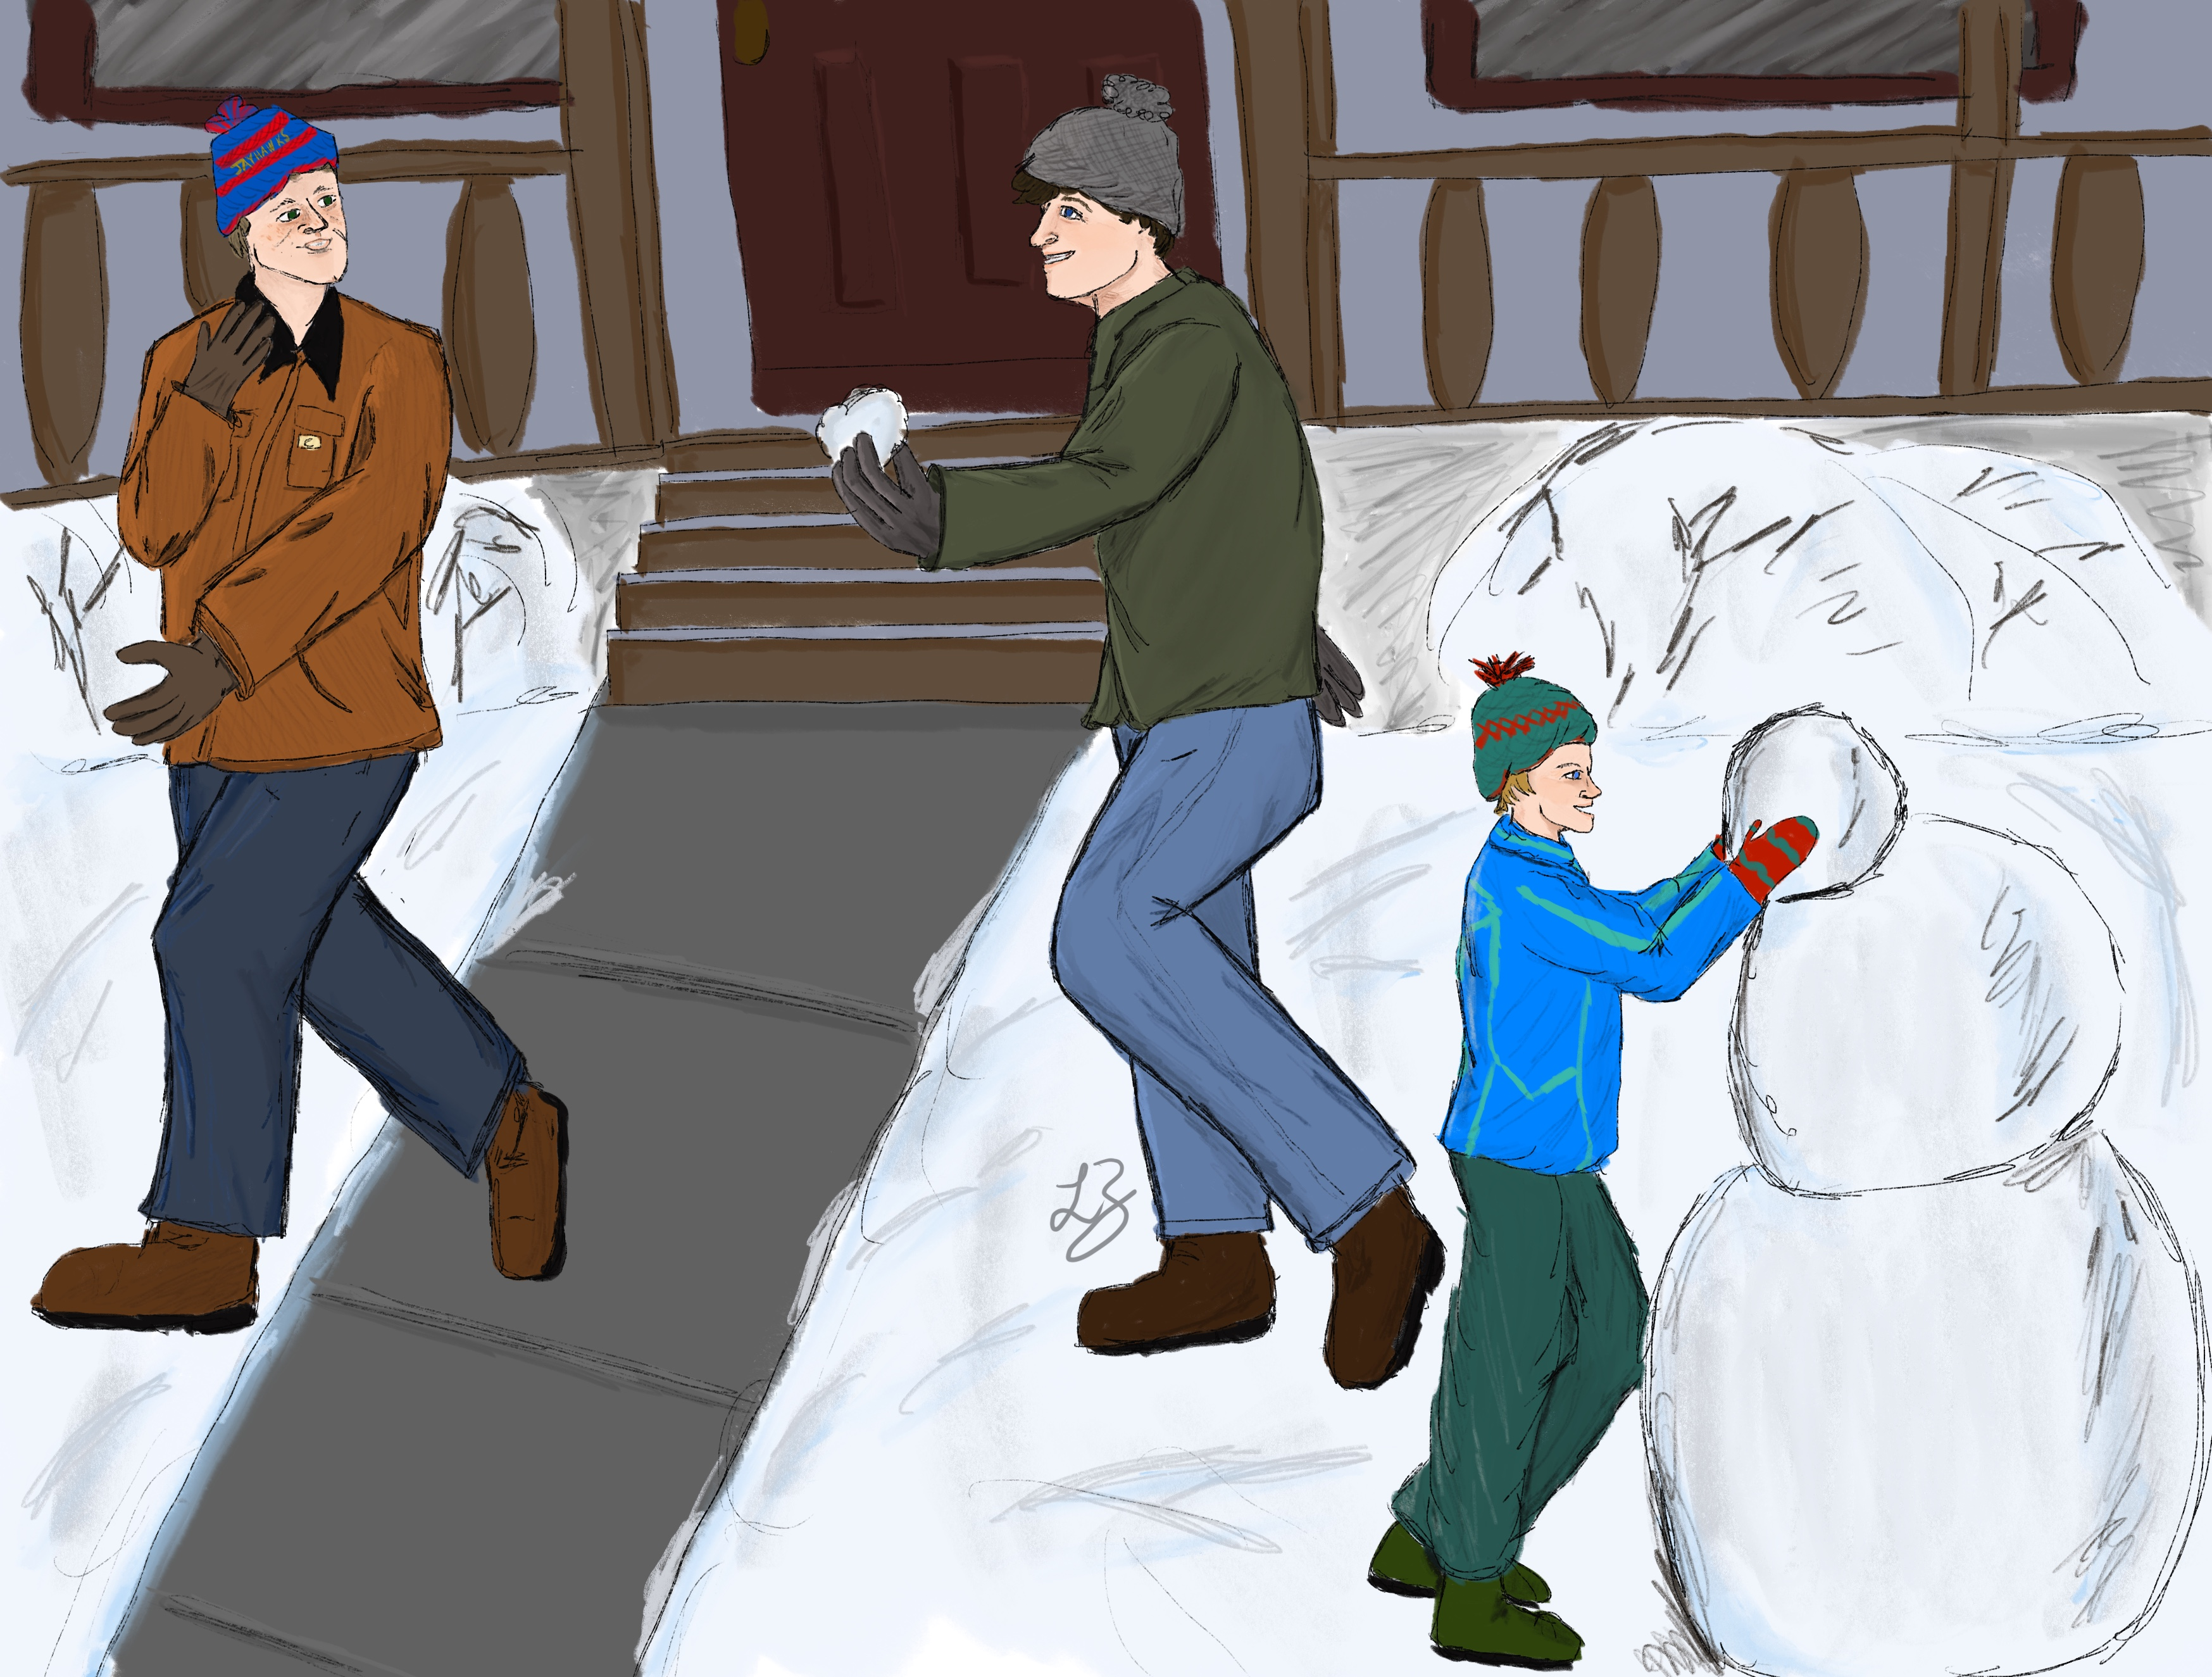 Jack building a snowman as Dean and Castiel have a snowball fight in the background